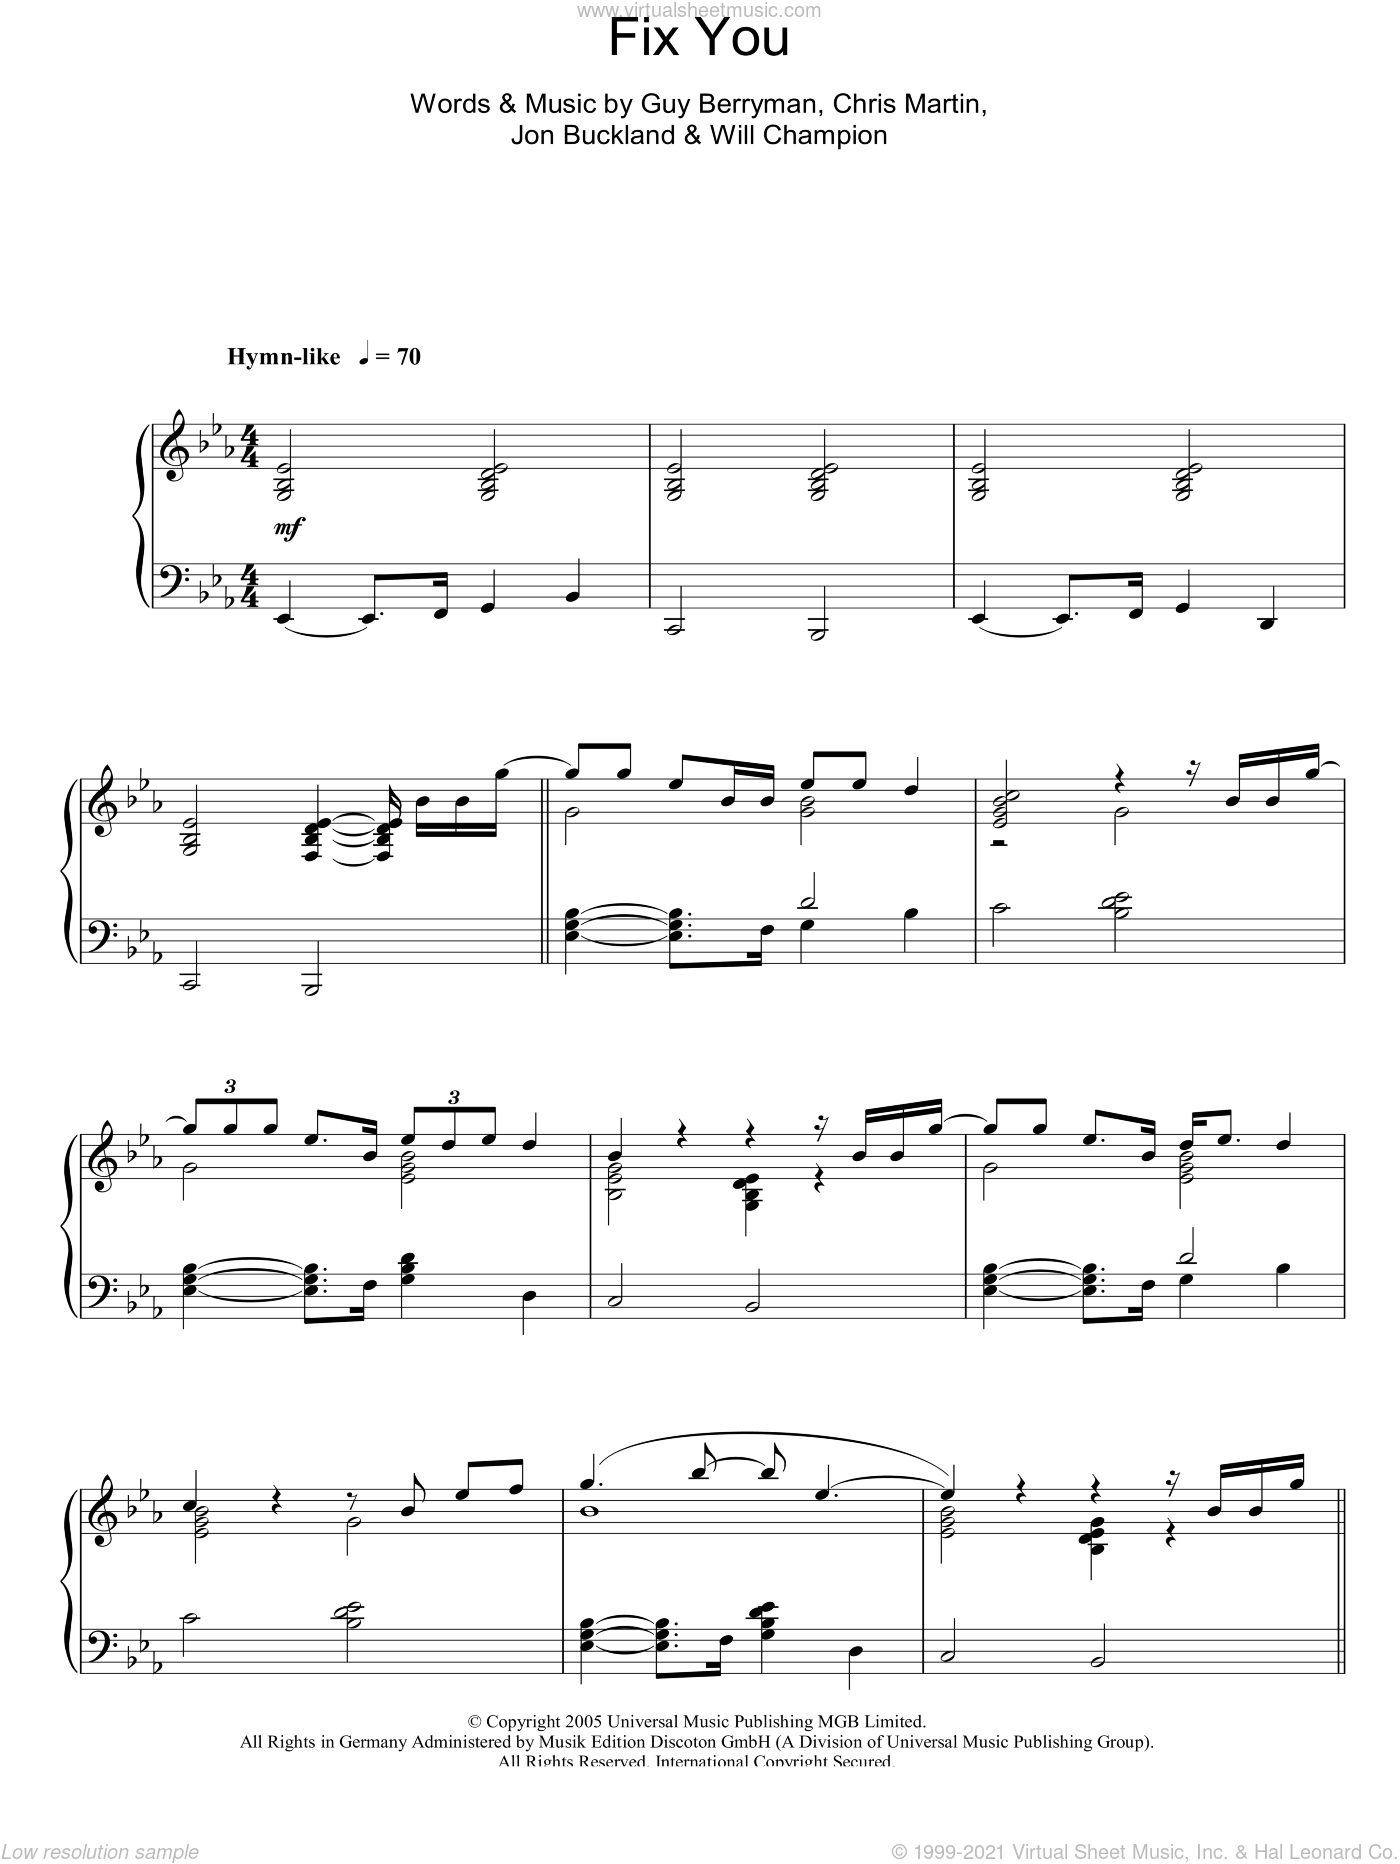 Fix You, (intermediate) sheet music for piano solo by Coldplay, Chris Martin, Guy Berryman, Jon Buckland and Will Champion, intermediate skill level